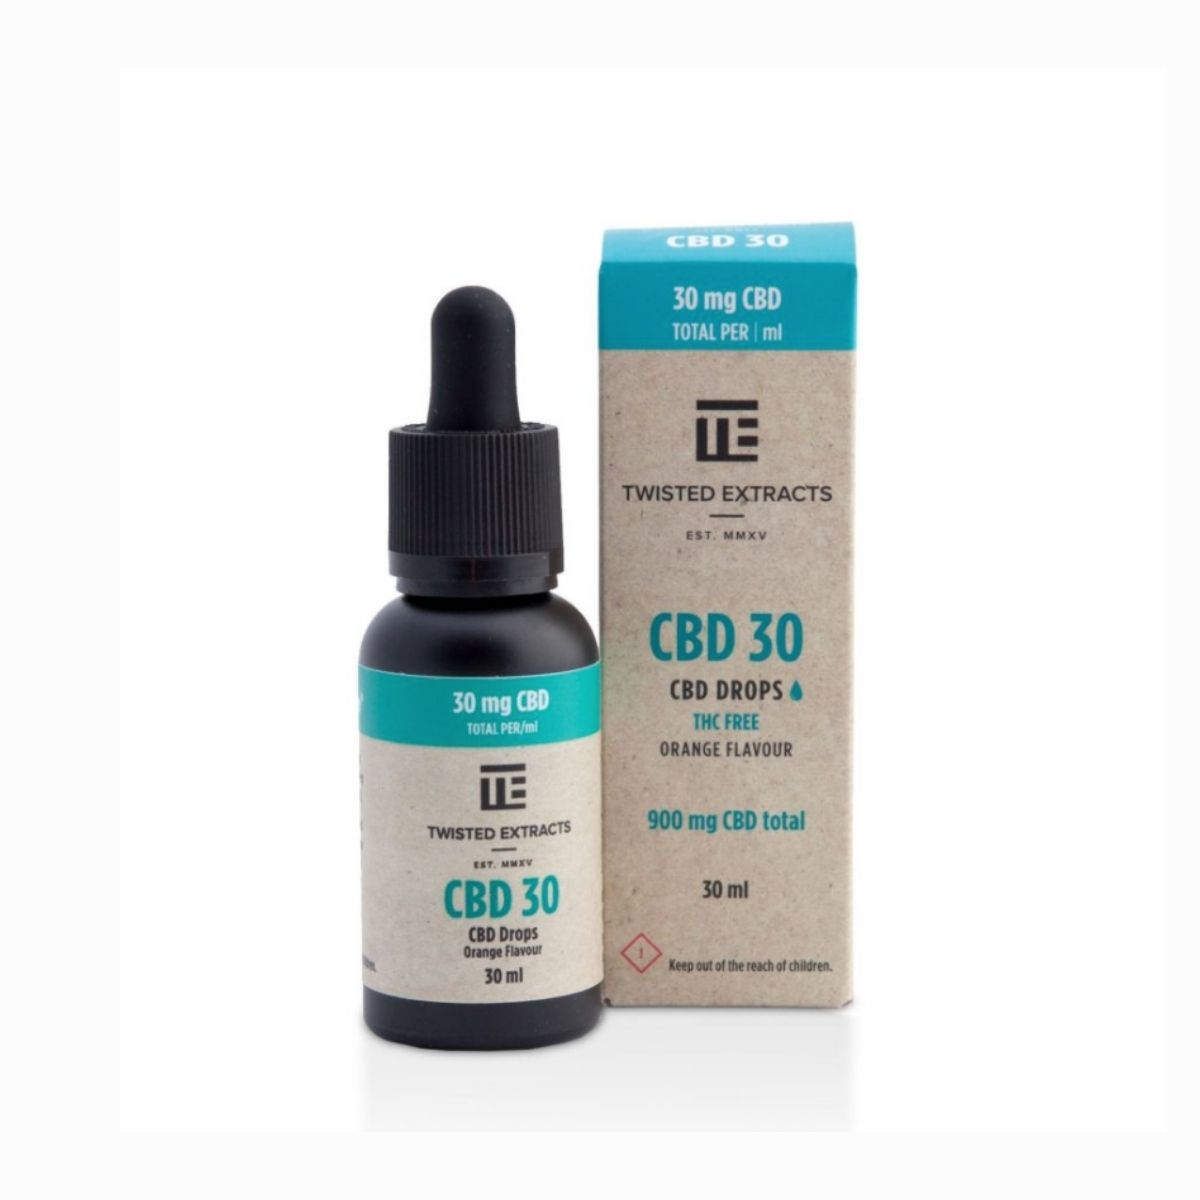 Twisted Extracts – 900mg CBD Orange Flavour